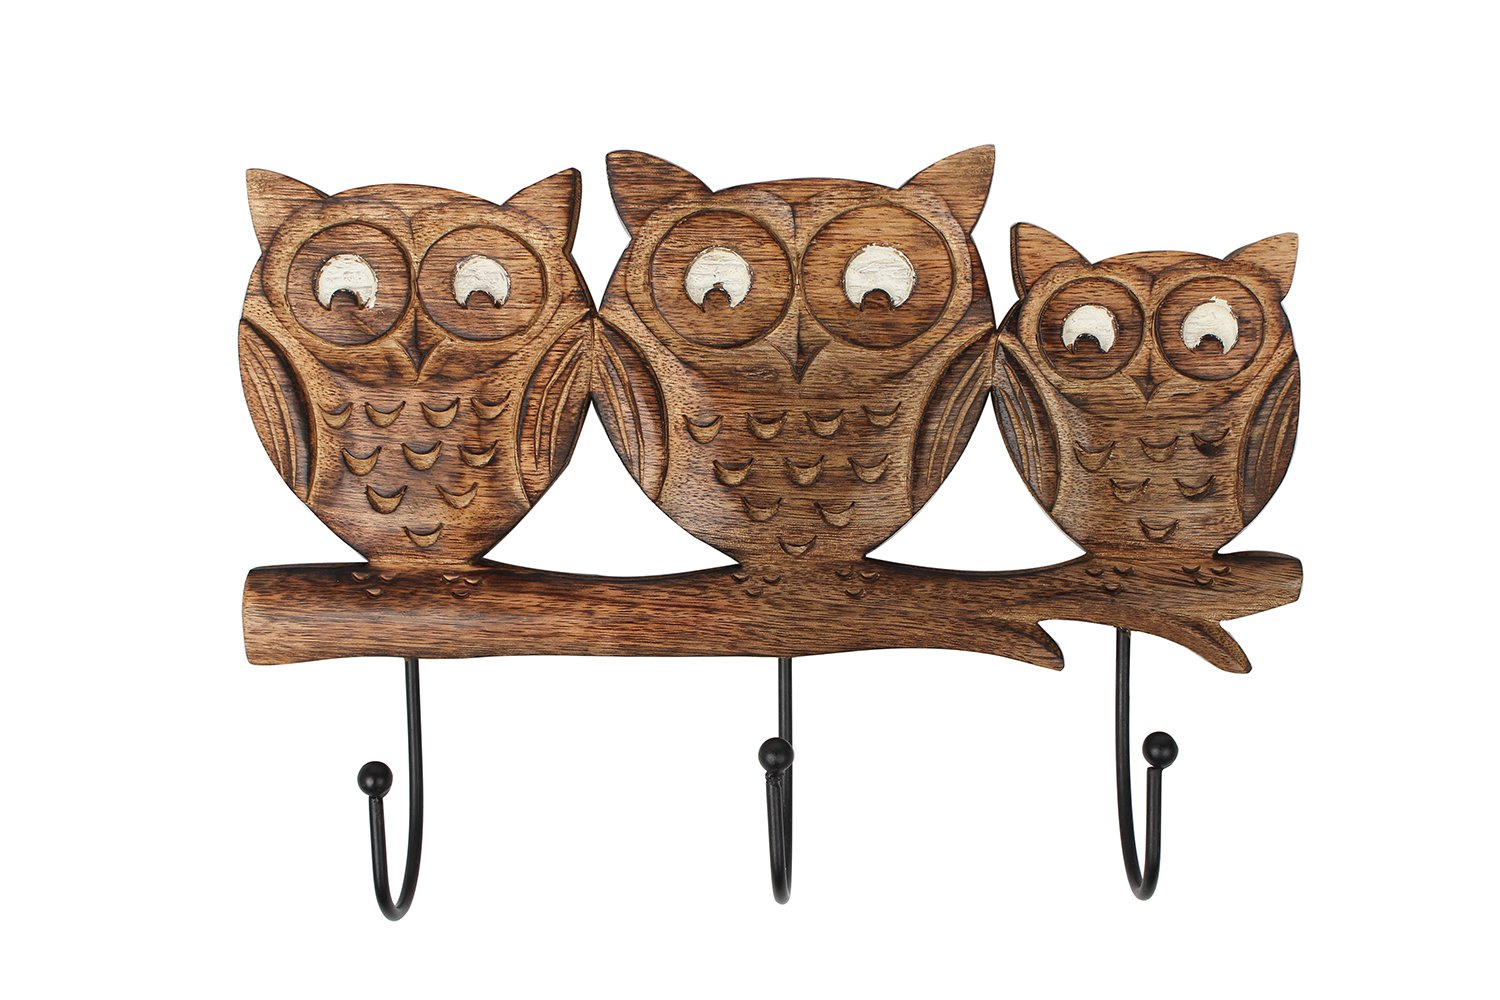 Store Indya – Wall Hooks Key Holders – Owl Wooden Coat Hangers